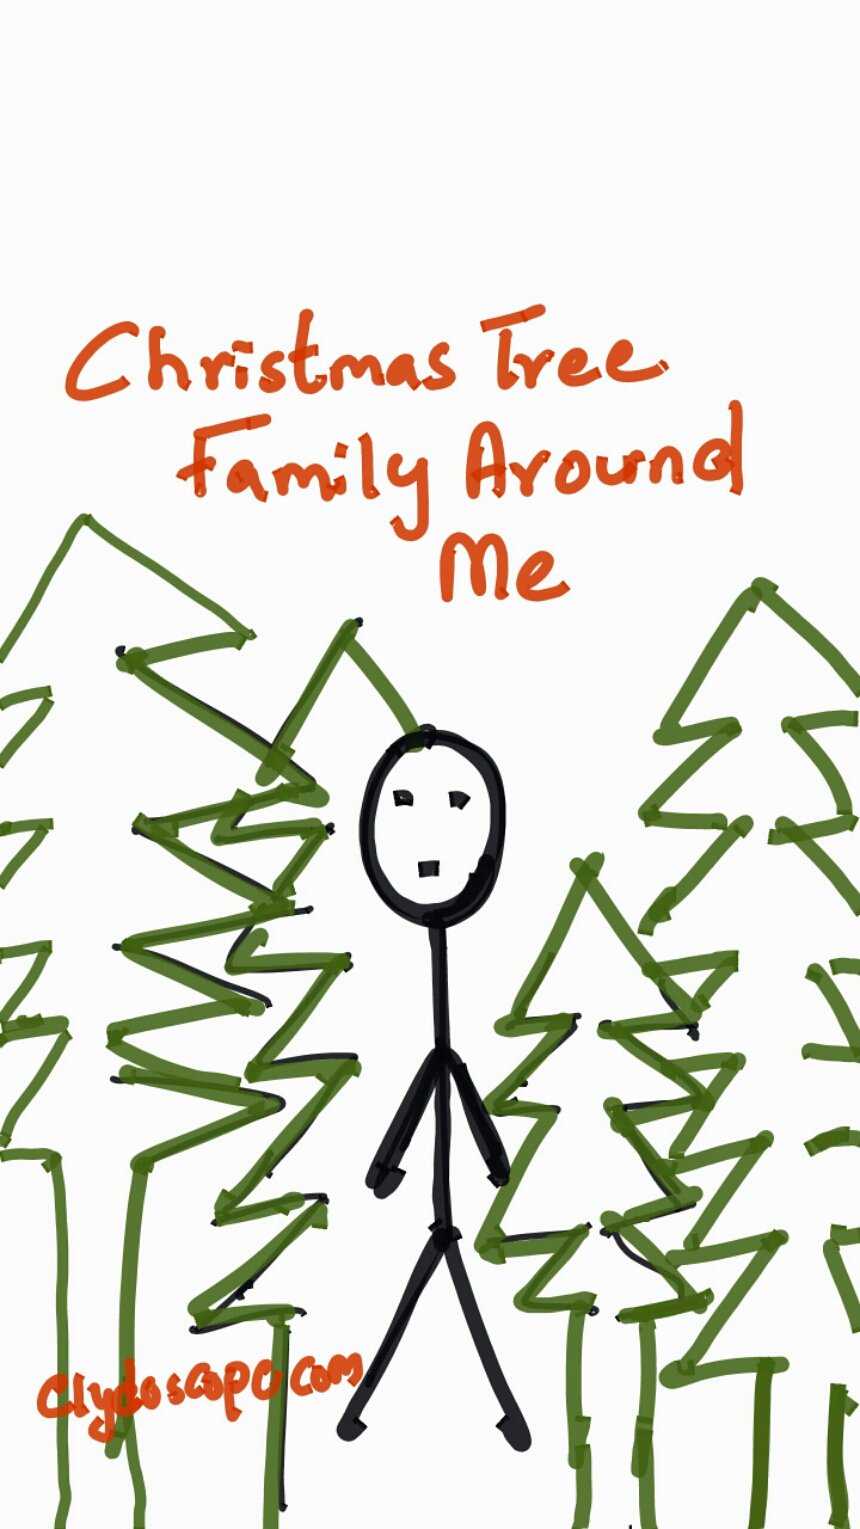 Family Of Christmas Trees Around Me | Clyde DSouza